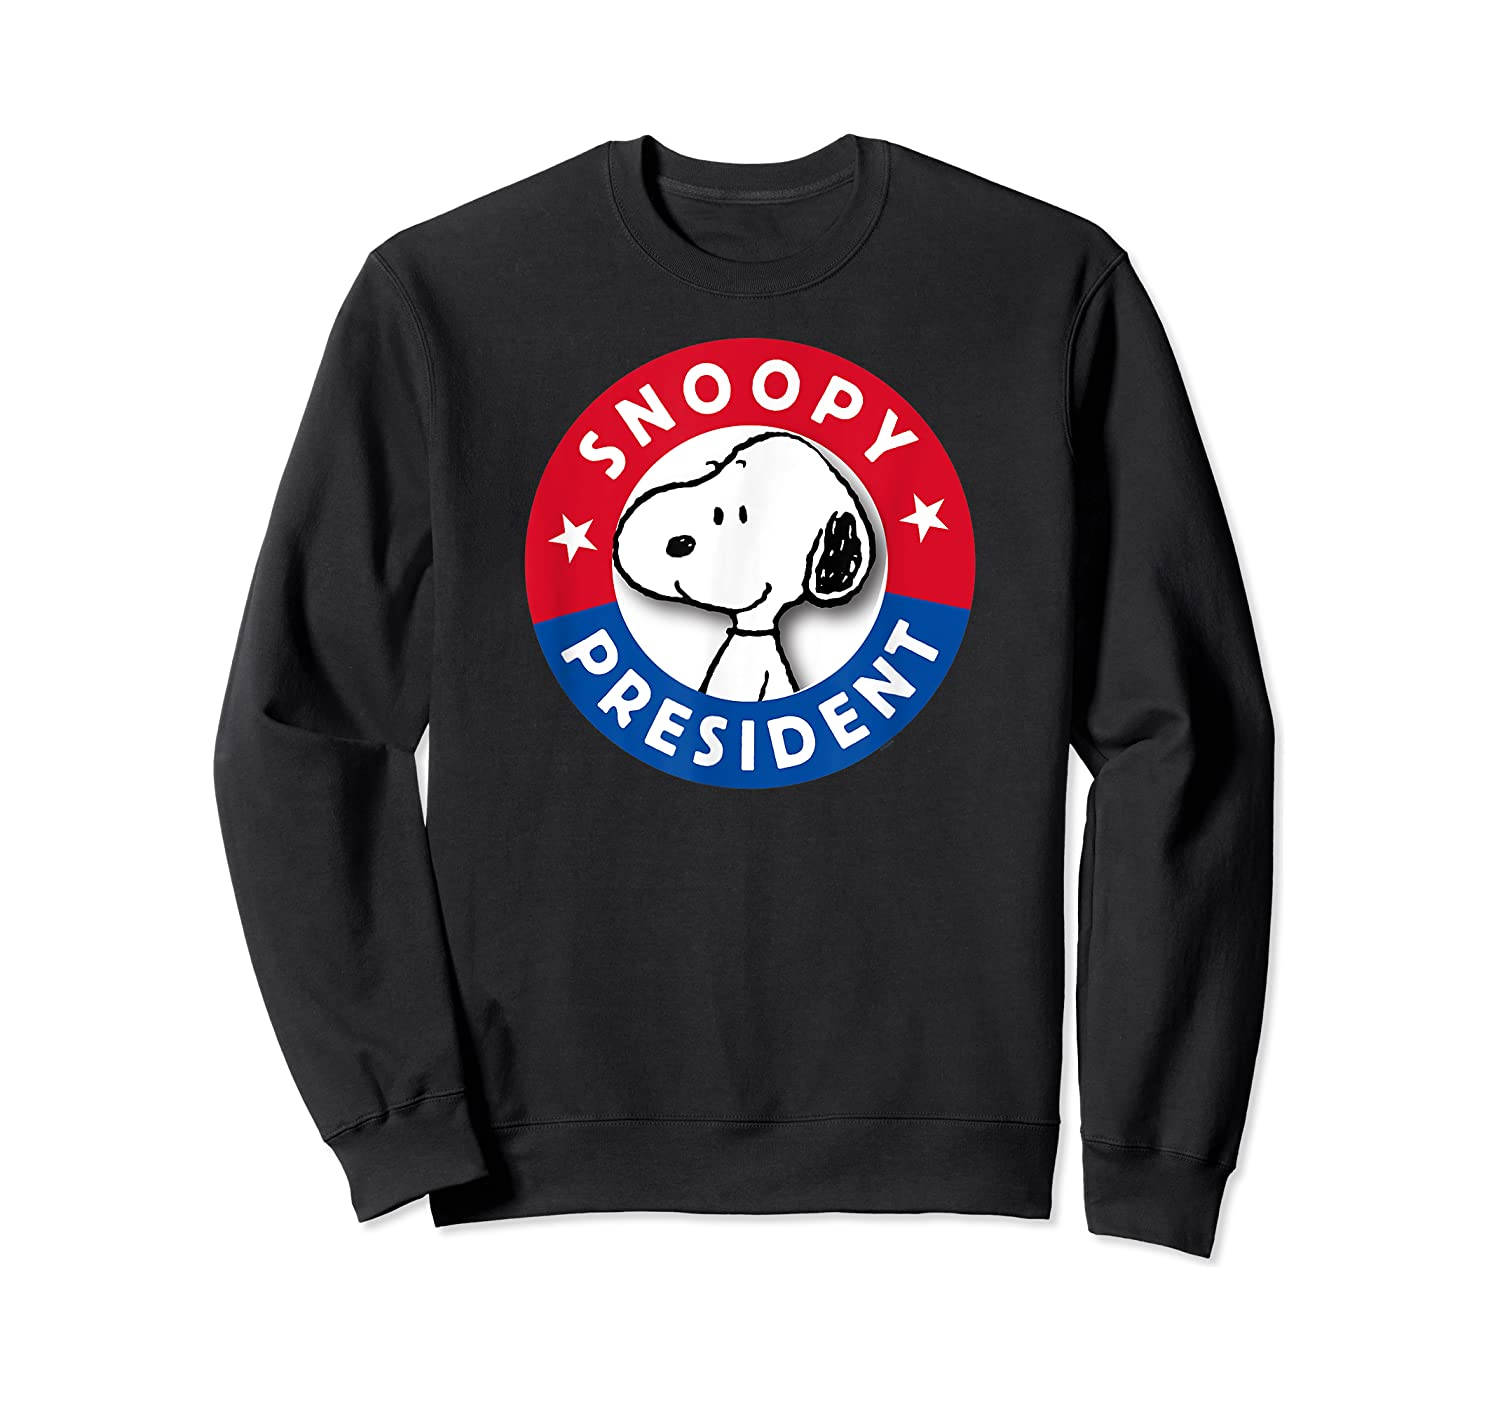 Peanuts Snoopy For President Shirts Crewneck Sweater